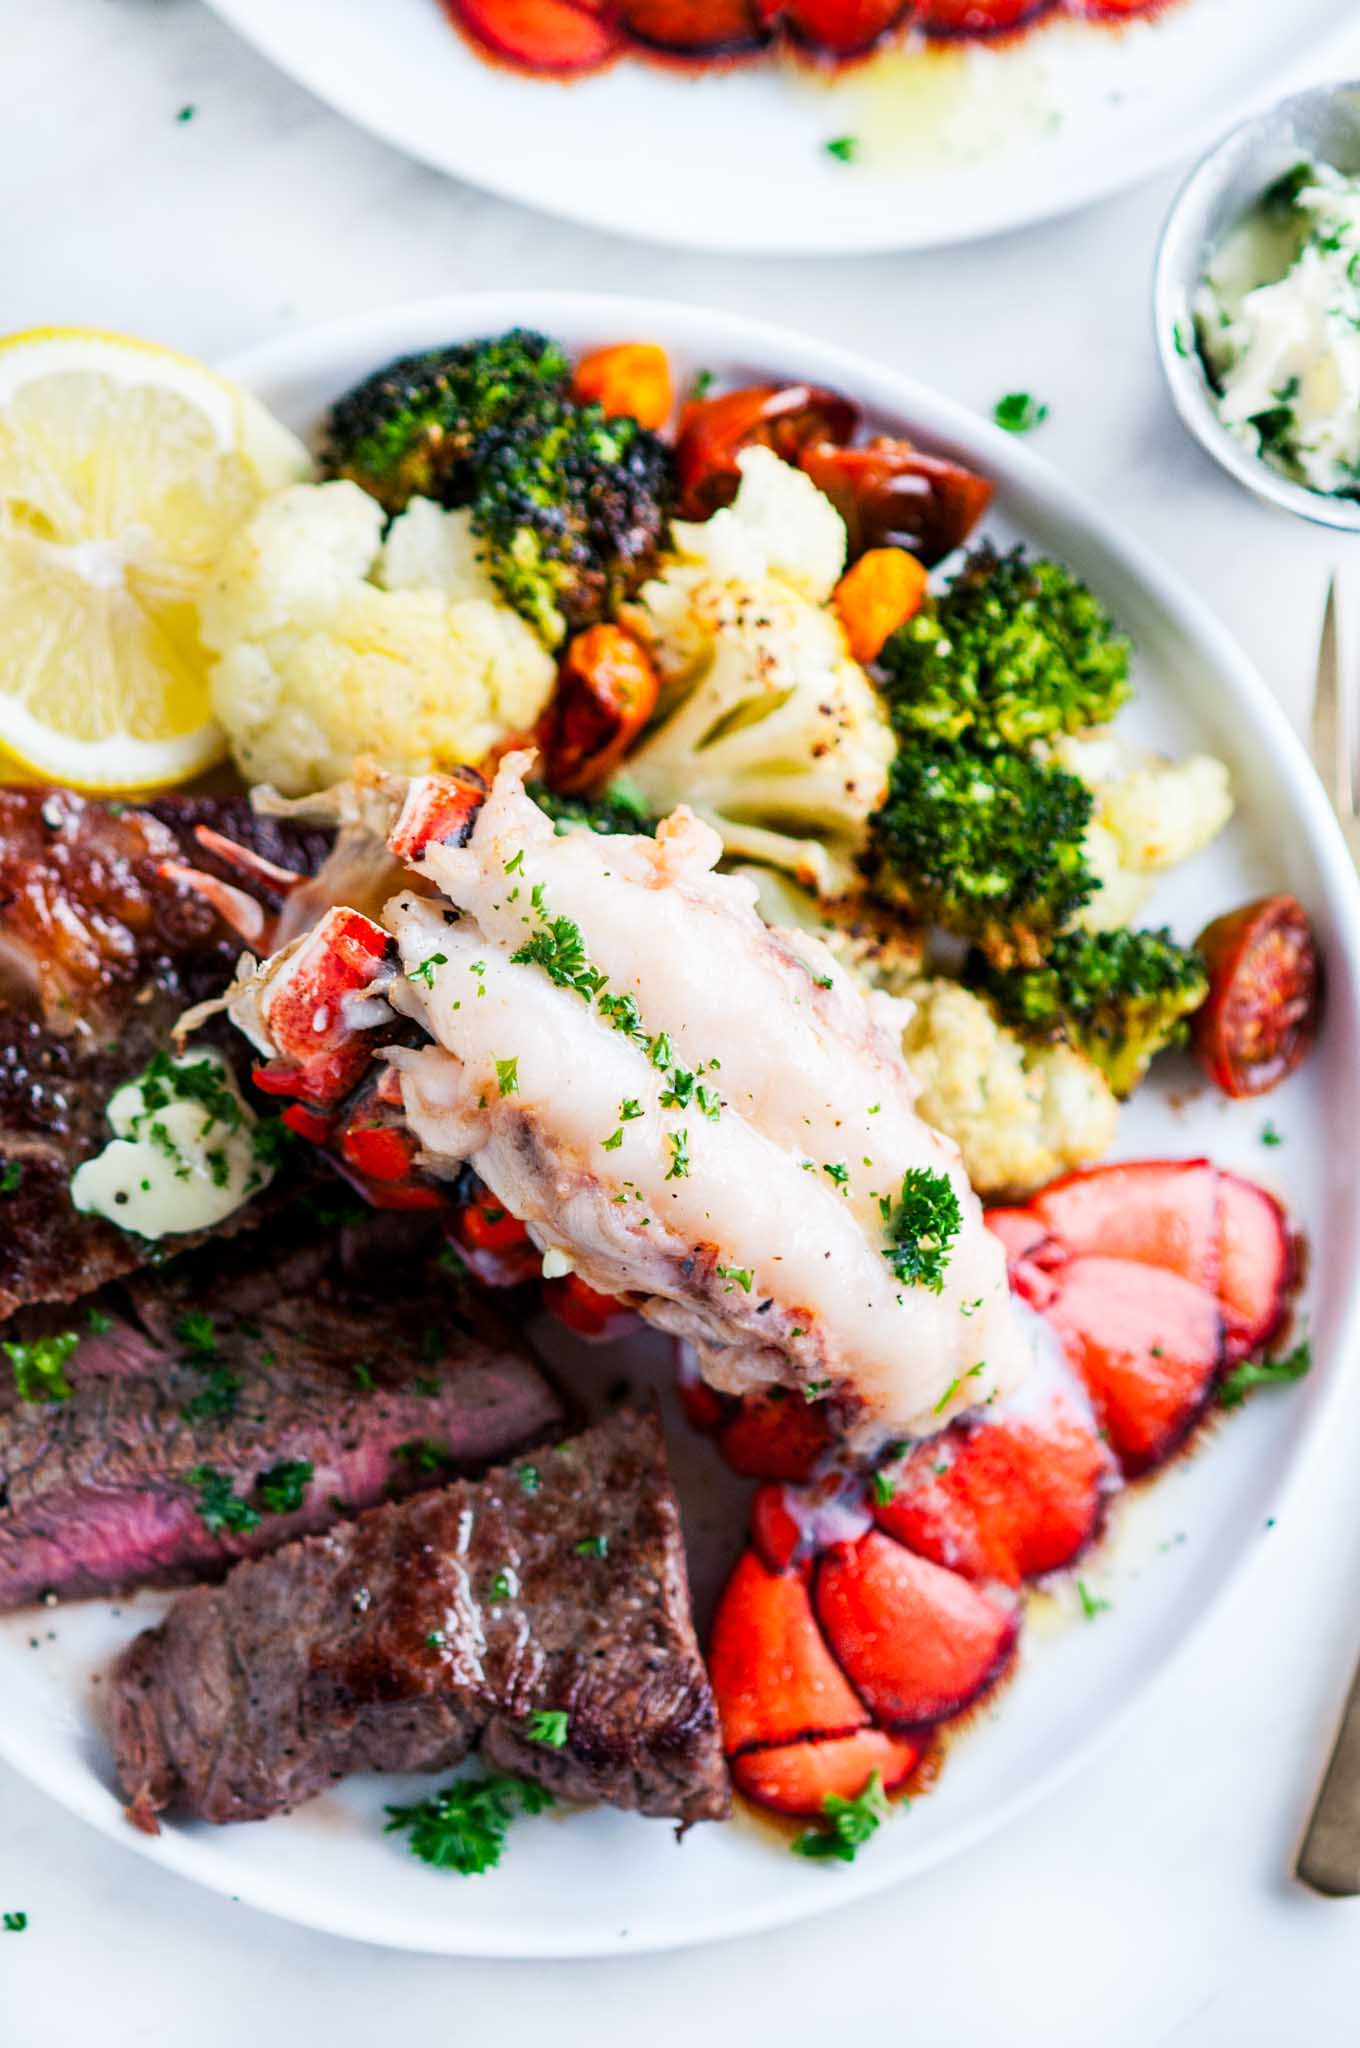 Surf En Turf >> Surf And Turf Steak And Lobster Tail For Two Aberdeen S Kitchen